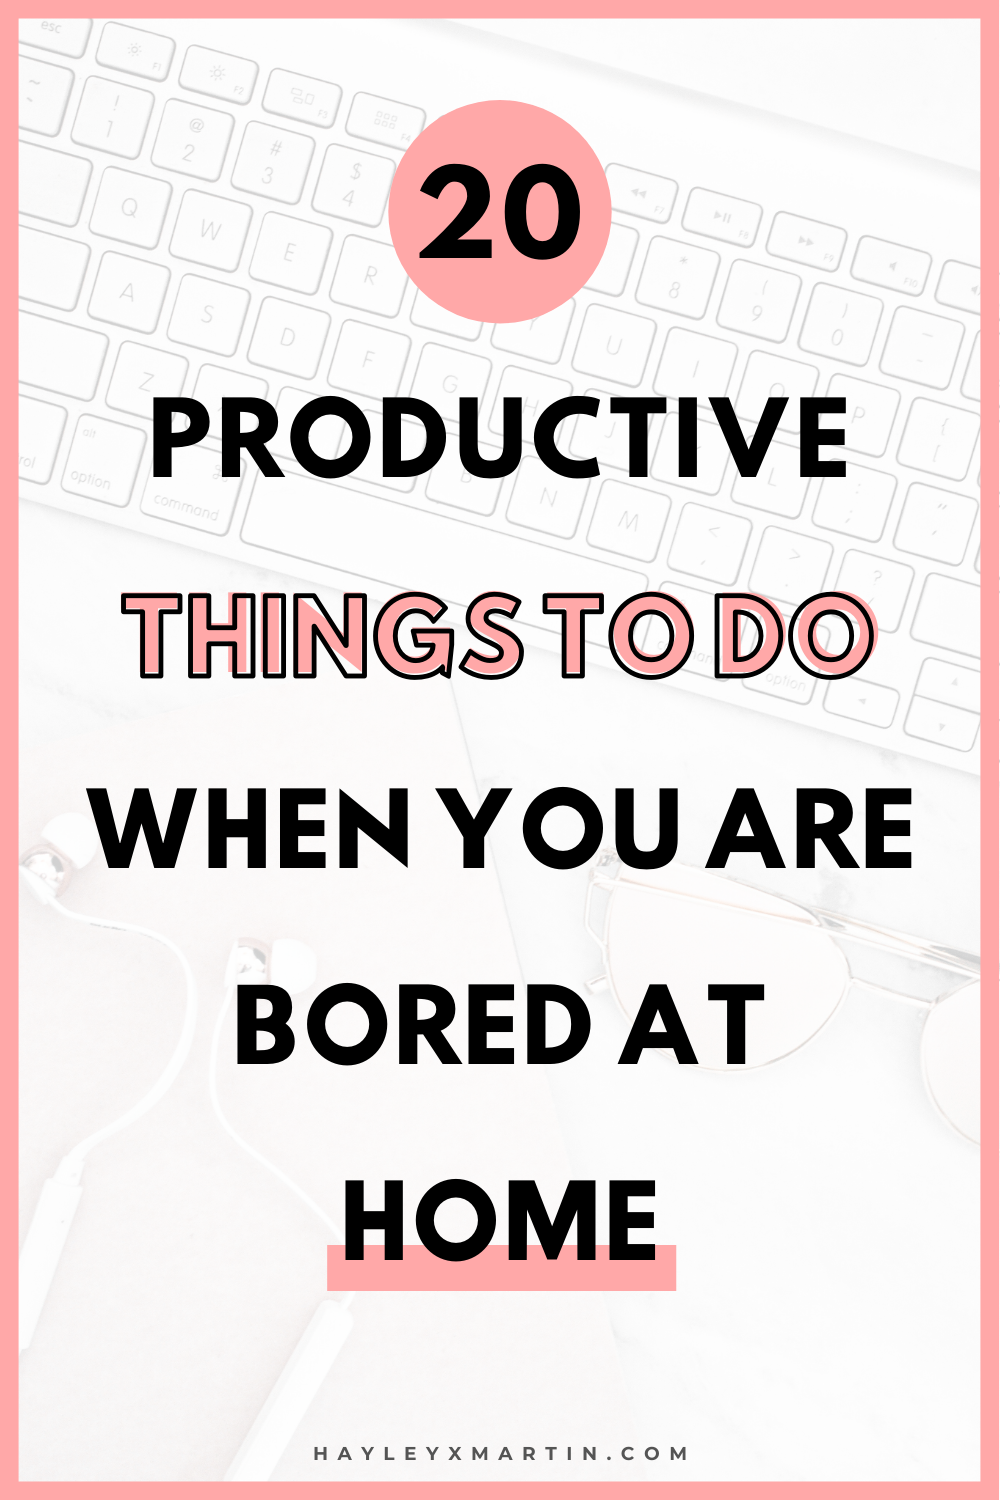 20 PRODUCTIVE THINGS TO DO WHEN YOU ARE BORED AT HOME | HAYLEYXMARTIN